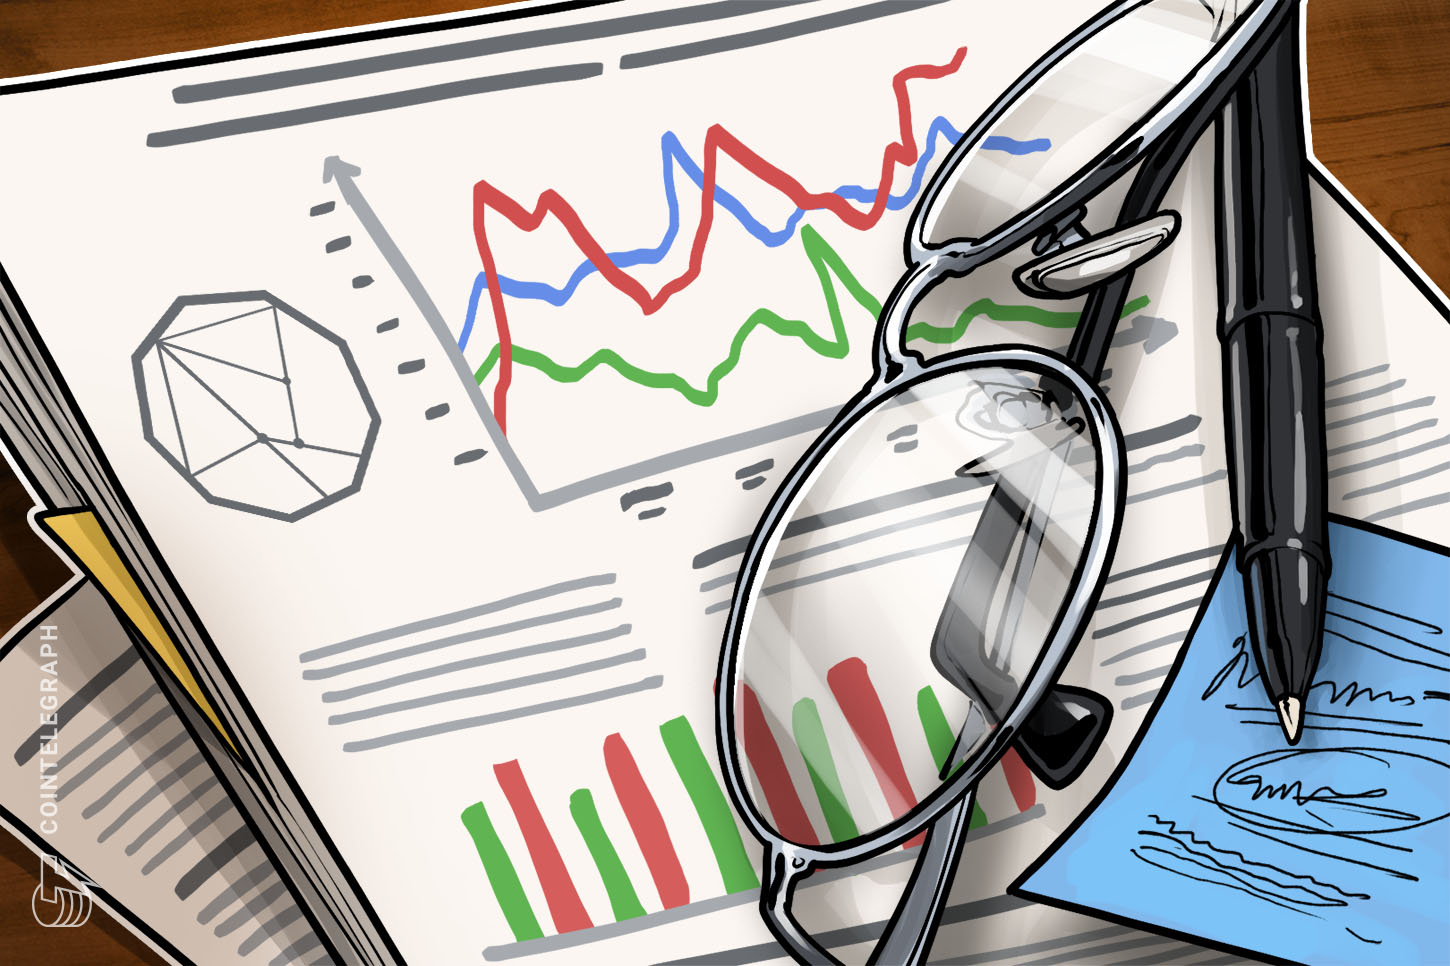 Tether claims to have increased total assets by $21B in new accounting review